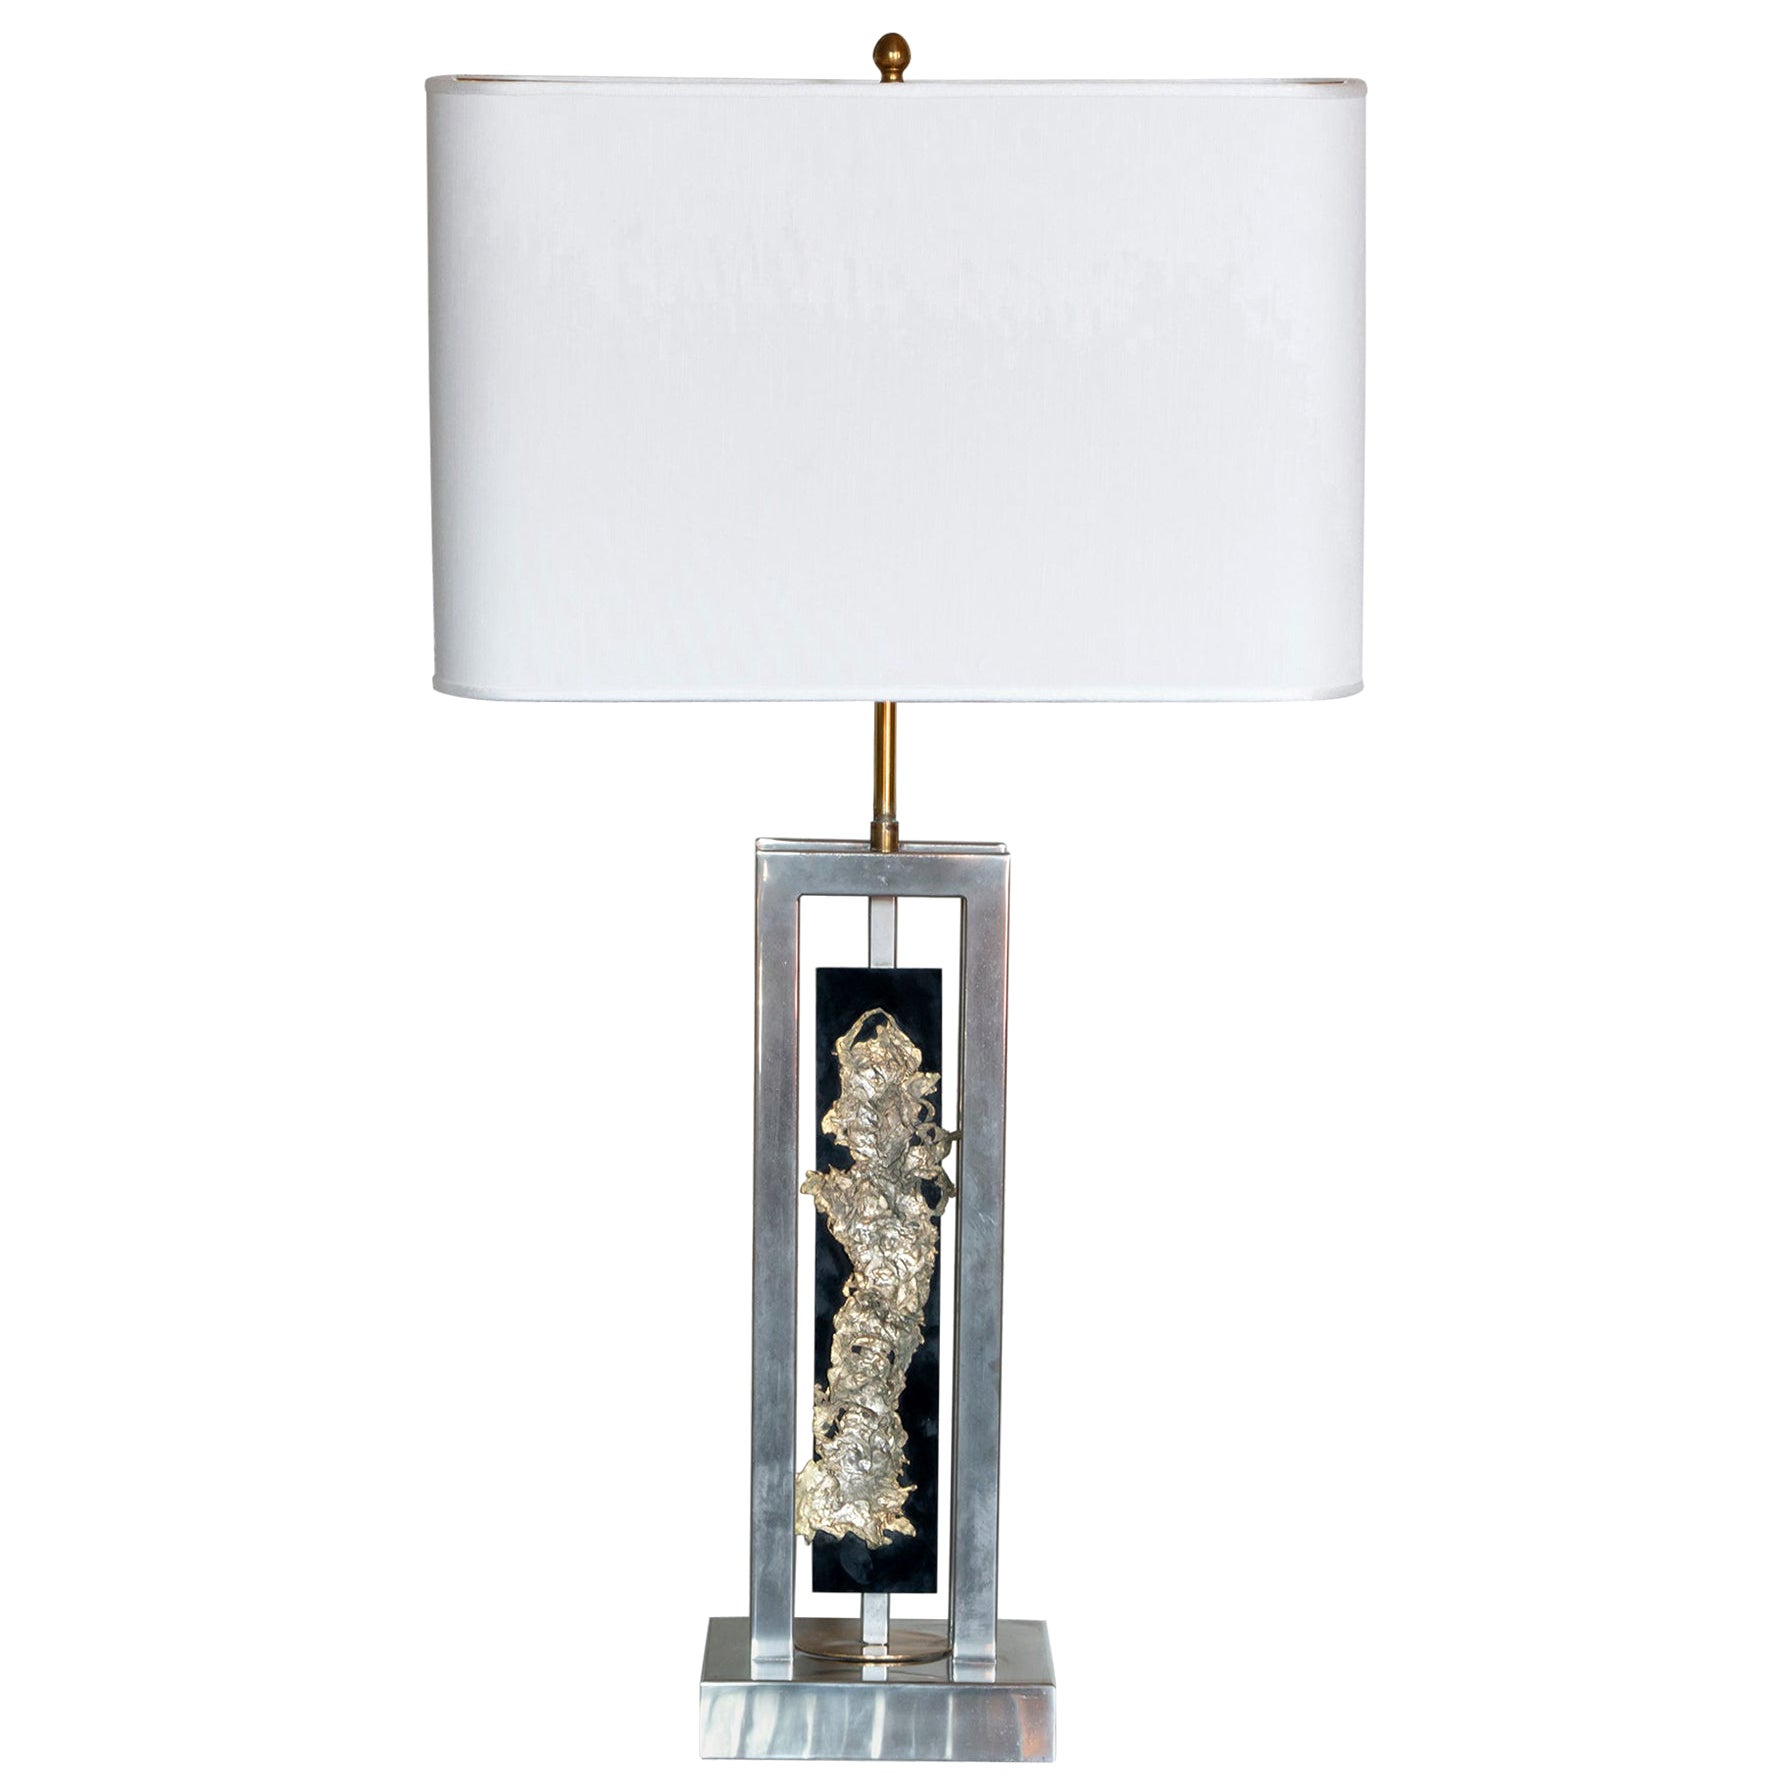 1970s French Philippe Cheverny Table Lamp, Chrome, Plexiglass and Brass Details